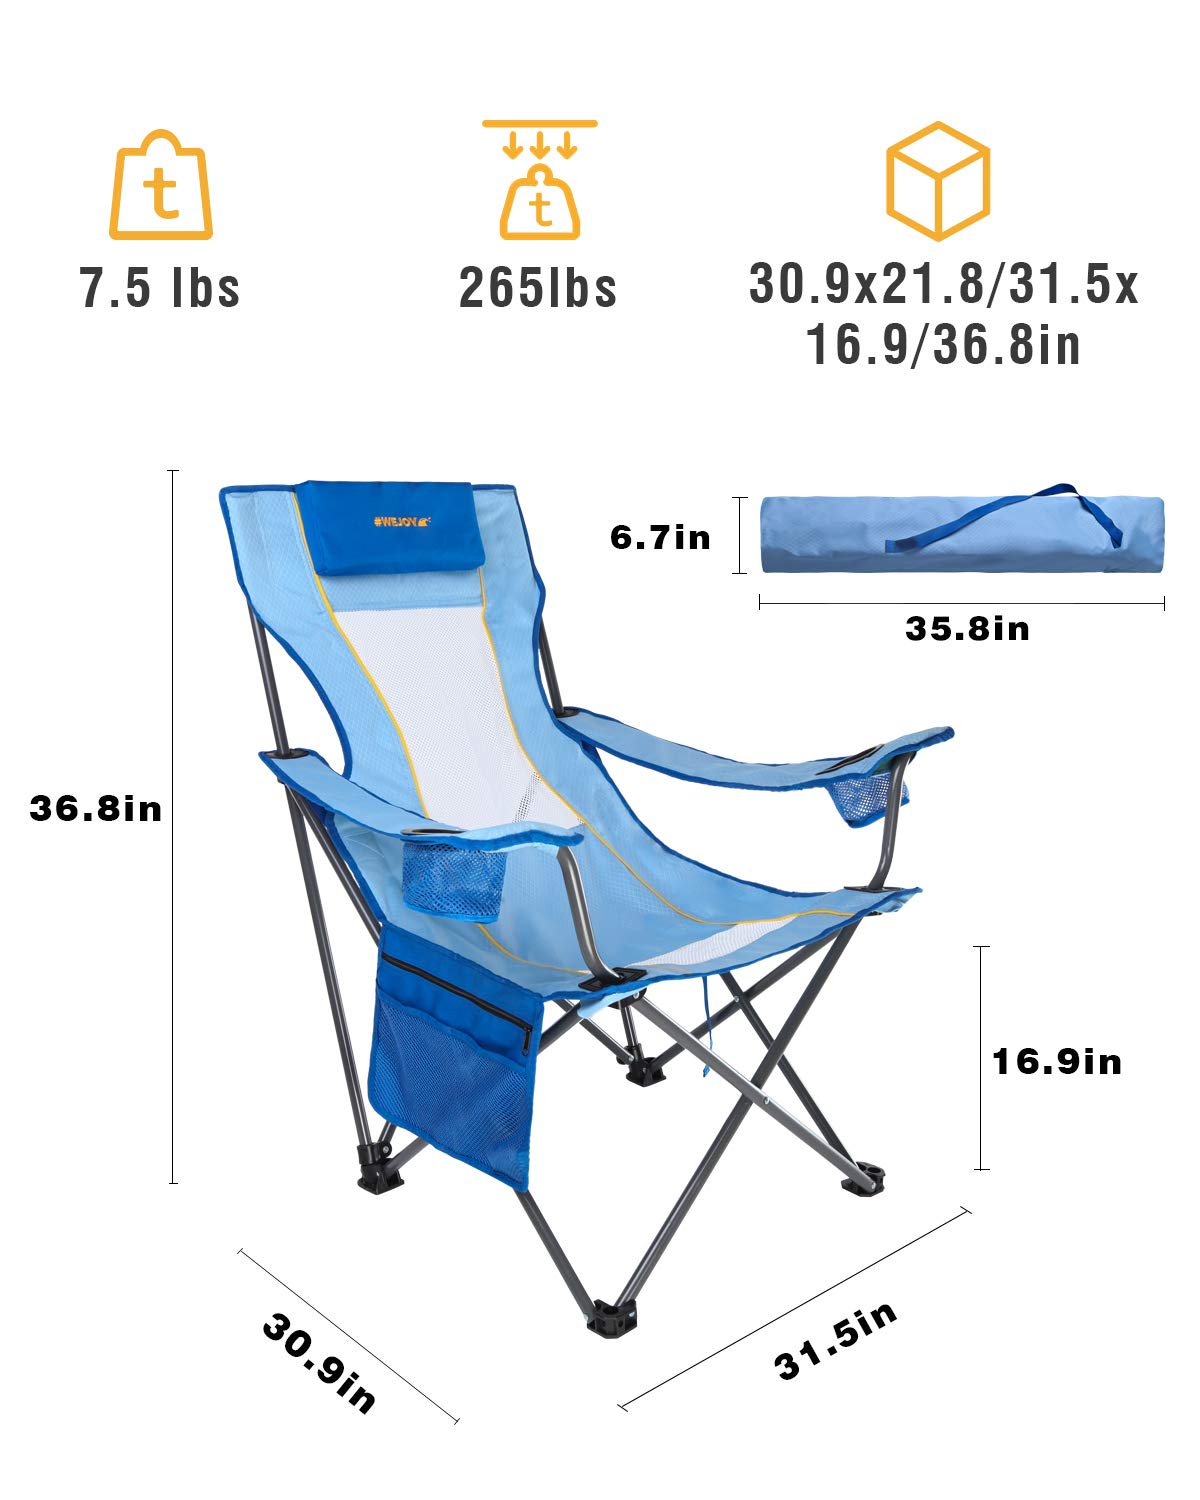 Blue #WEJOY Lightweight Compact Portable Folding Reclining Camping Beach Chair with Pillow Cup Holder Pocket Mesh Back for Outdoor Garden Patio Lawn Hiking Backpacking